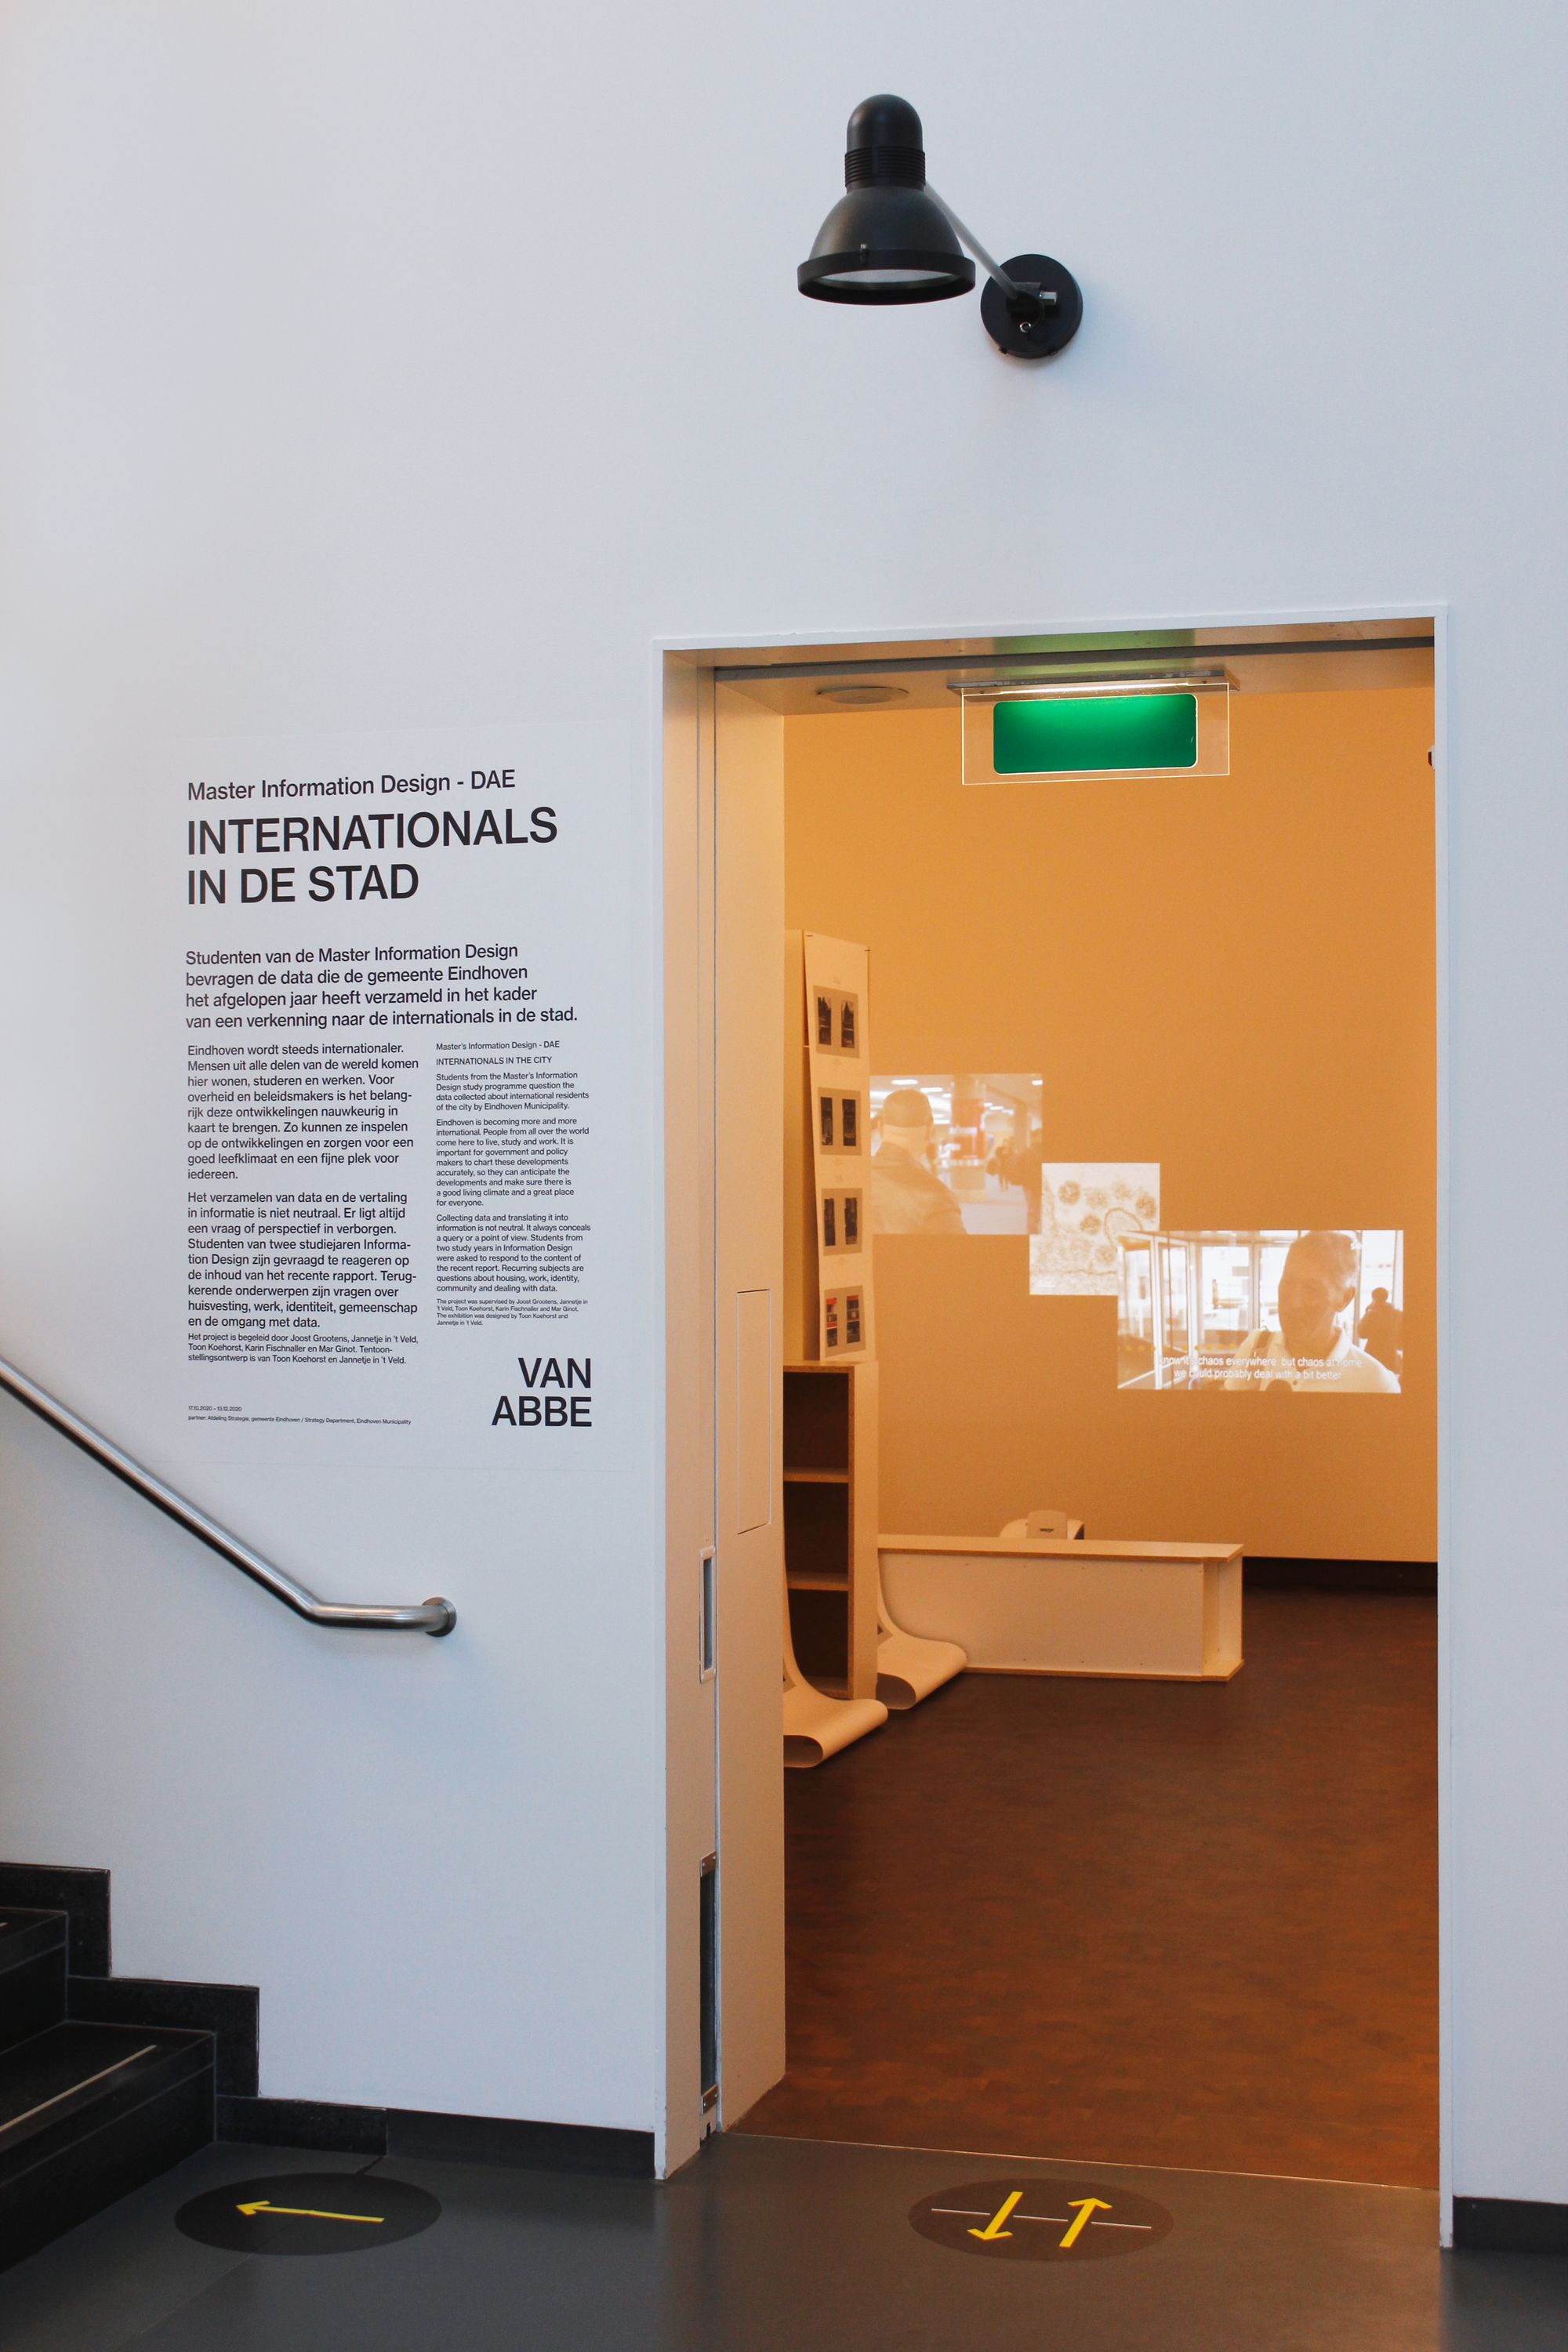 Entrance to the exhbition